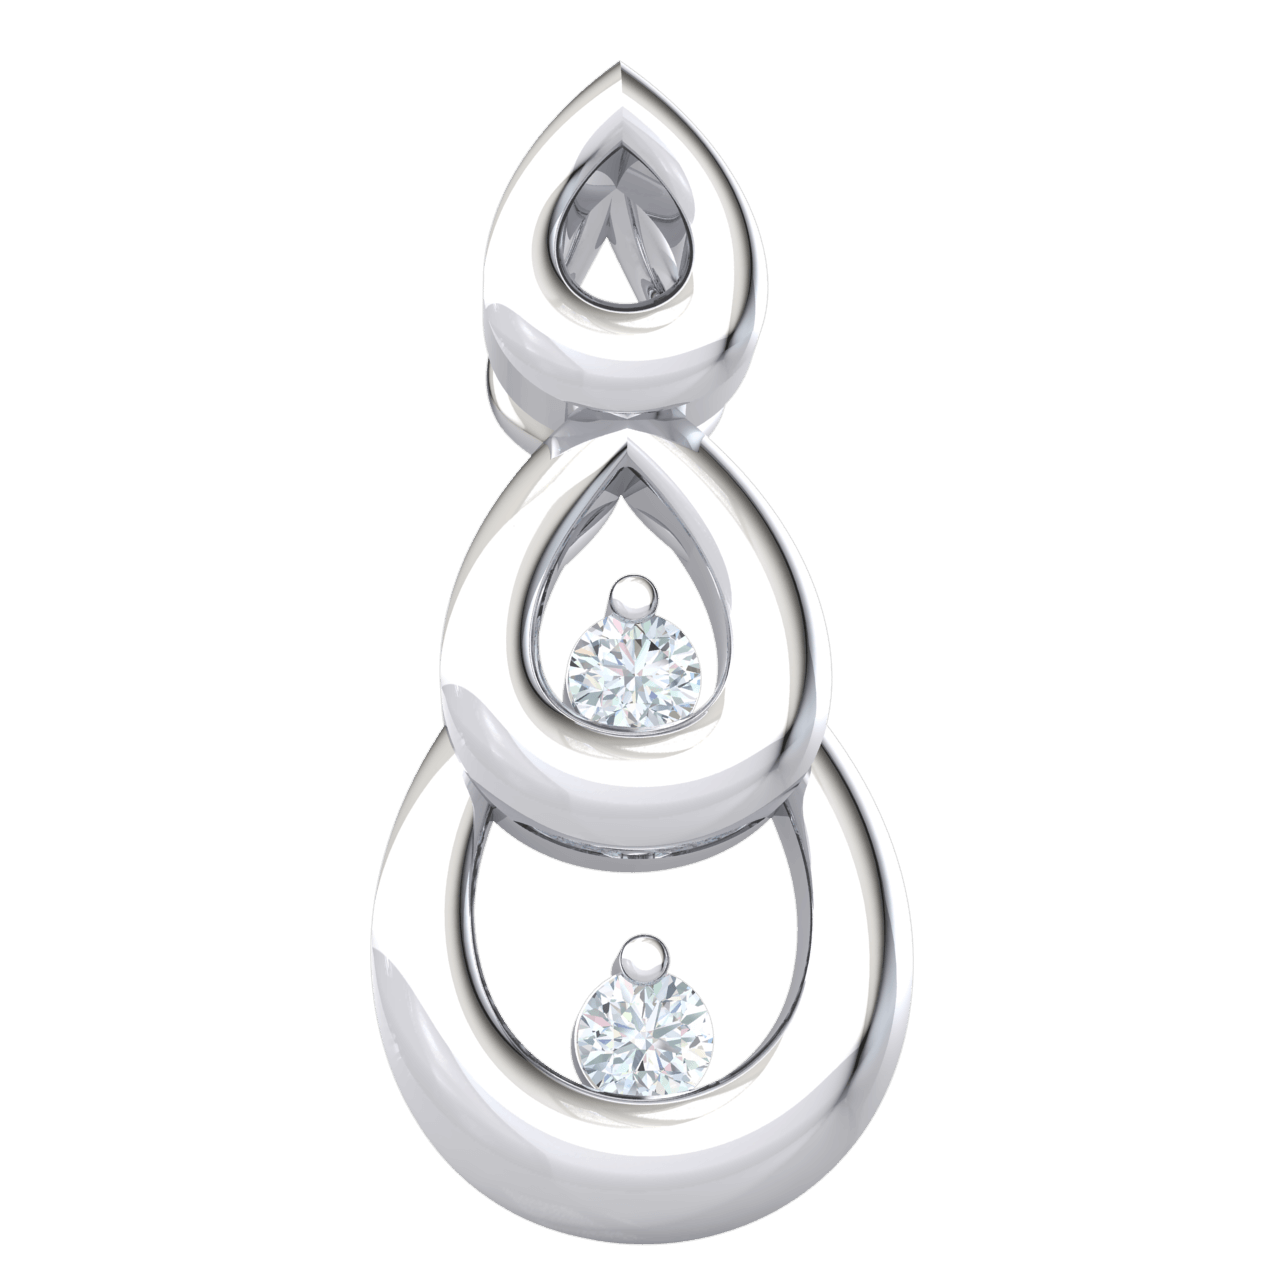 0.02 Ct IJ SI2 Heart Stopping And Timeless 3 Tier Teardrop Shaped Real Pendant With Sparkling White Diamond Treasures Inside in 14 kt Gold